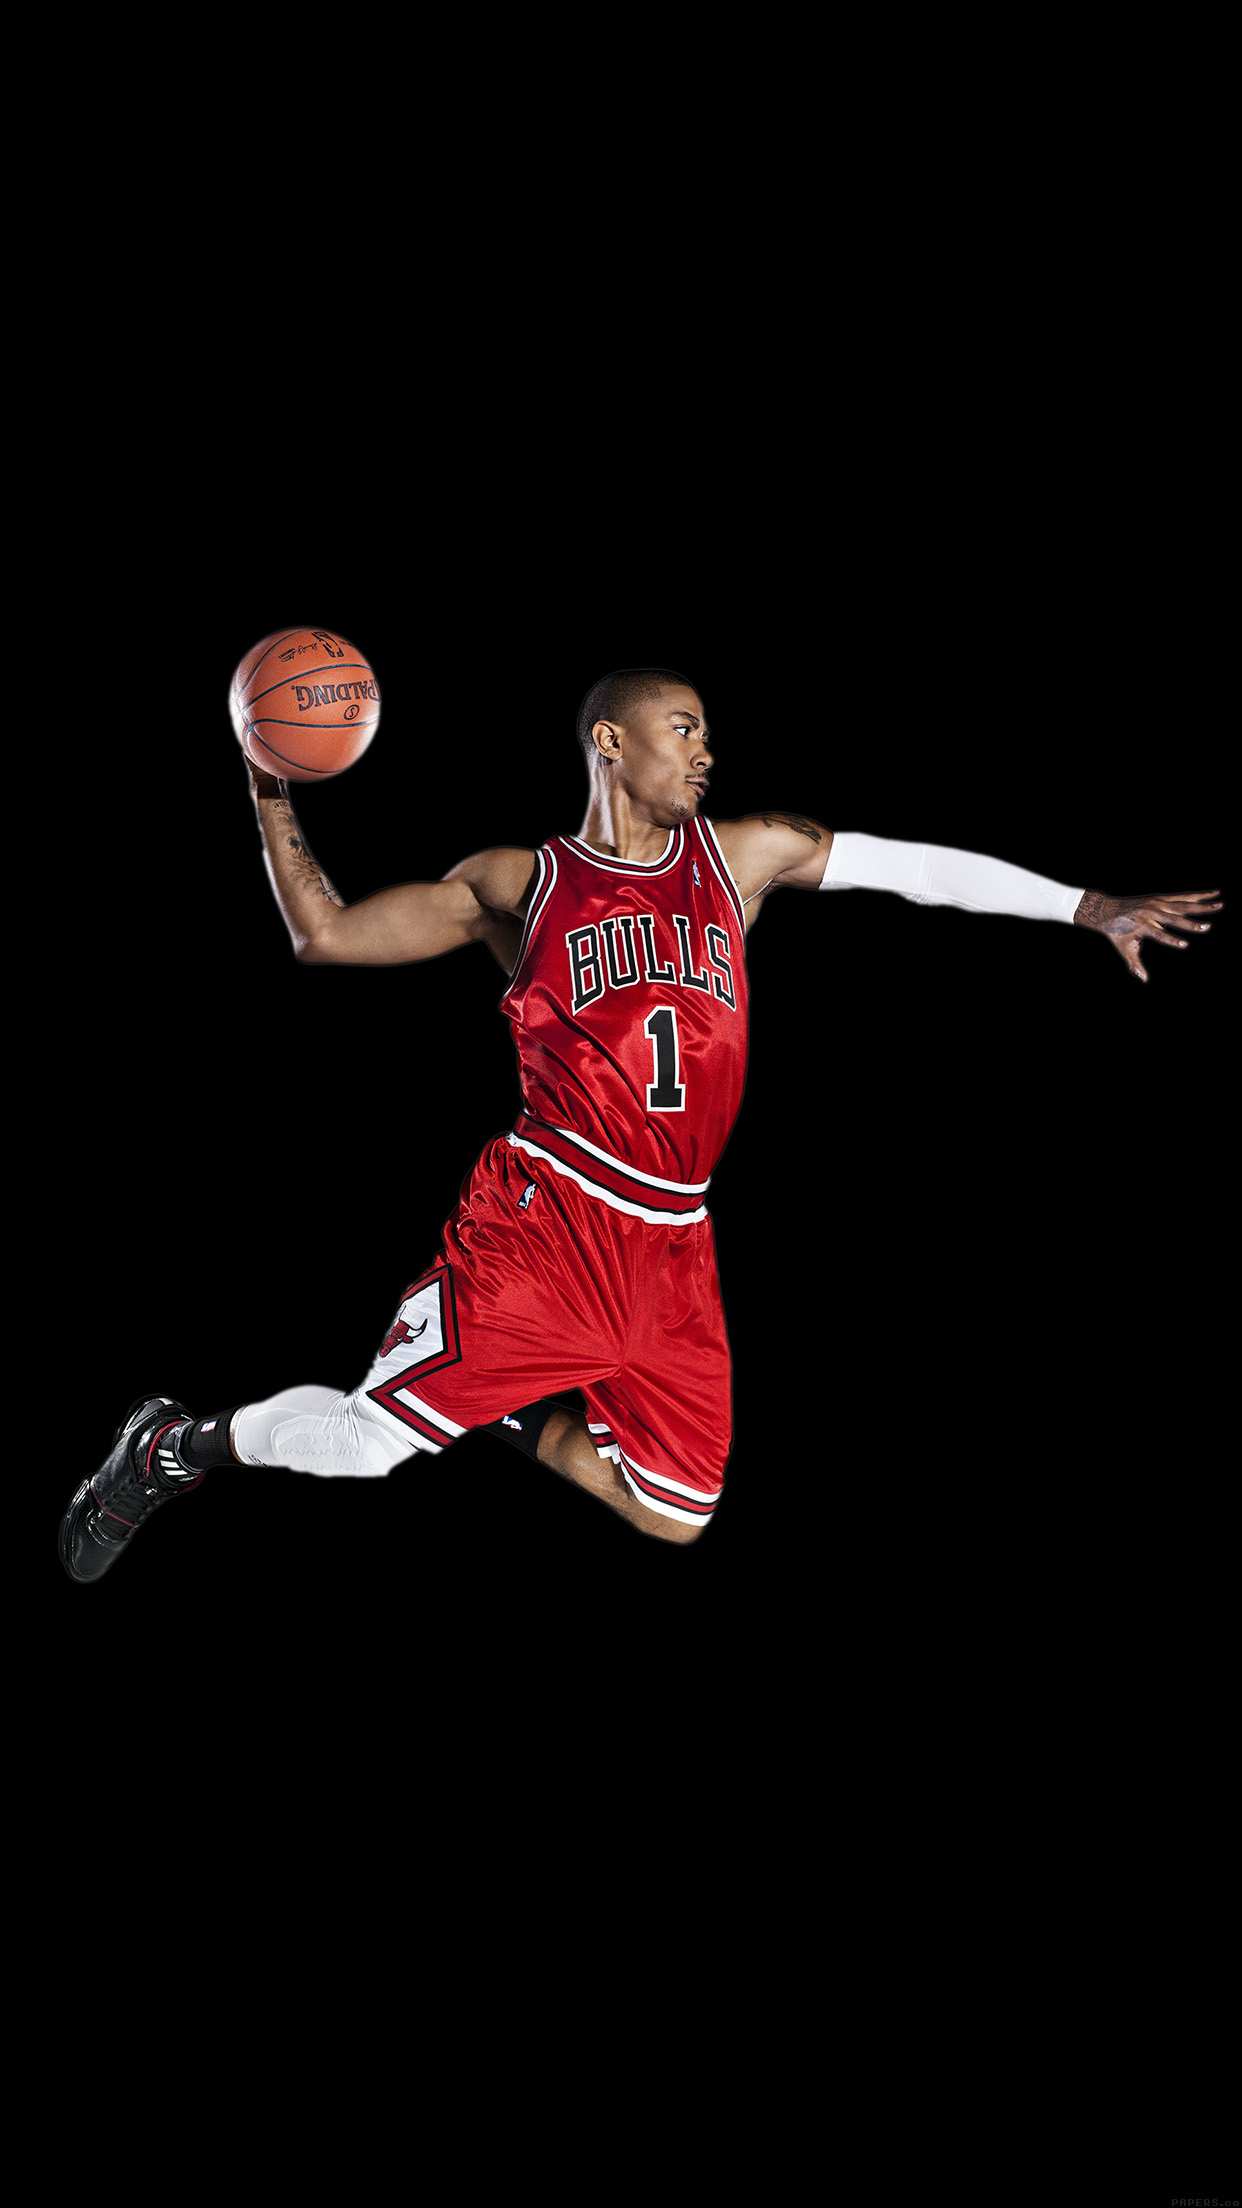 Chicago Bulls Wallpaper Iphone 6 Hd02 Chicago Bulls Derrick Rose Dark Sports